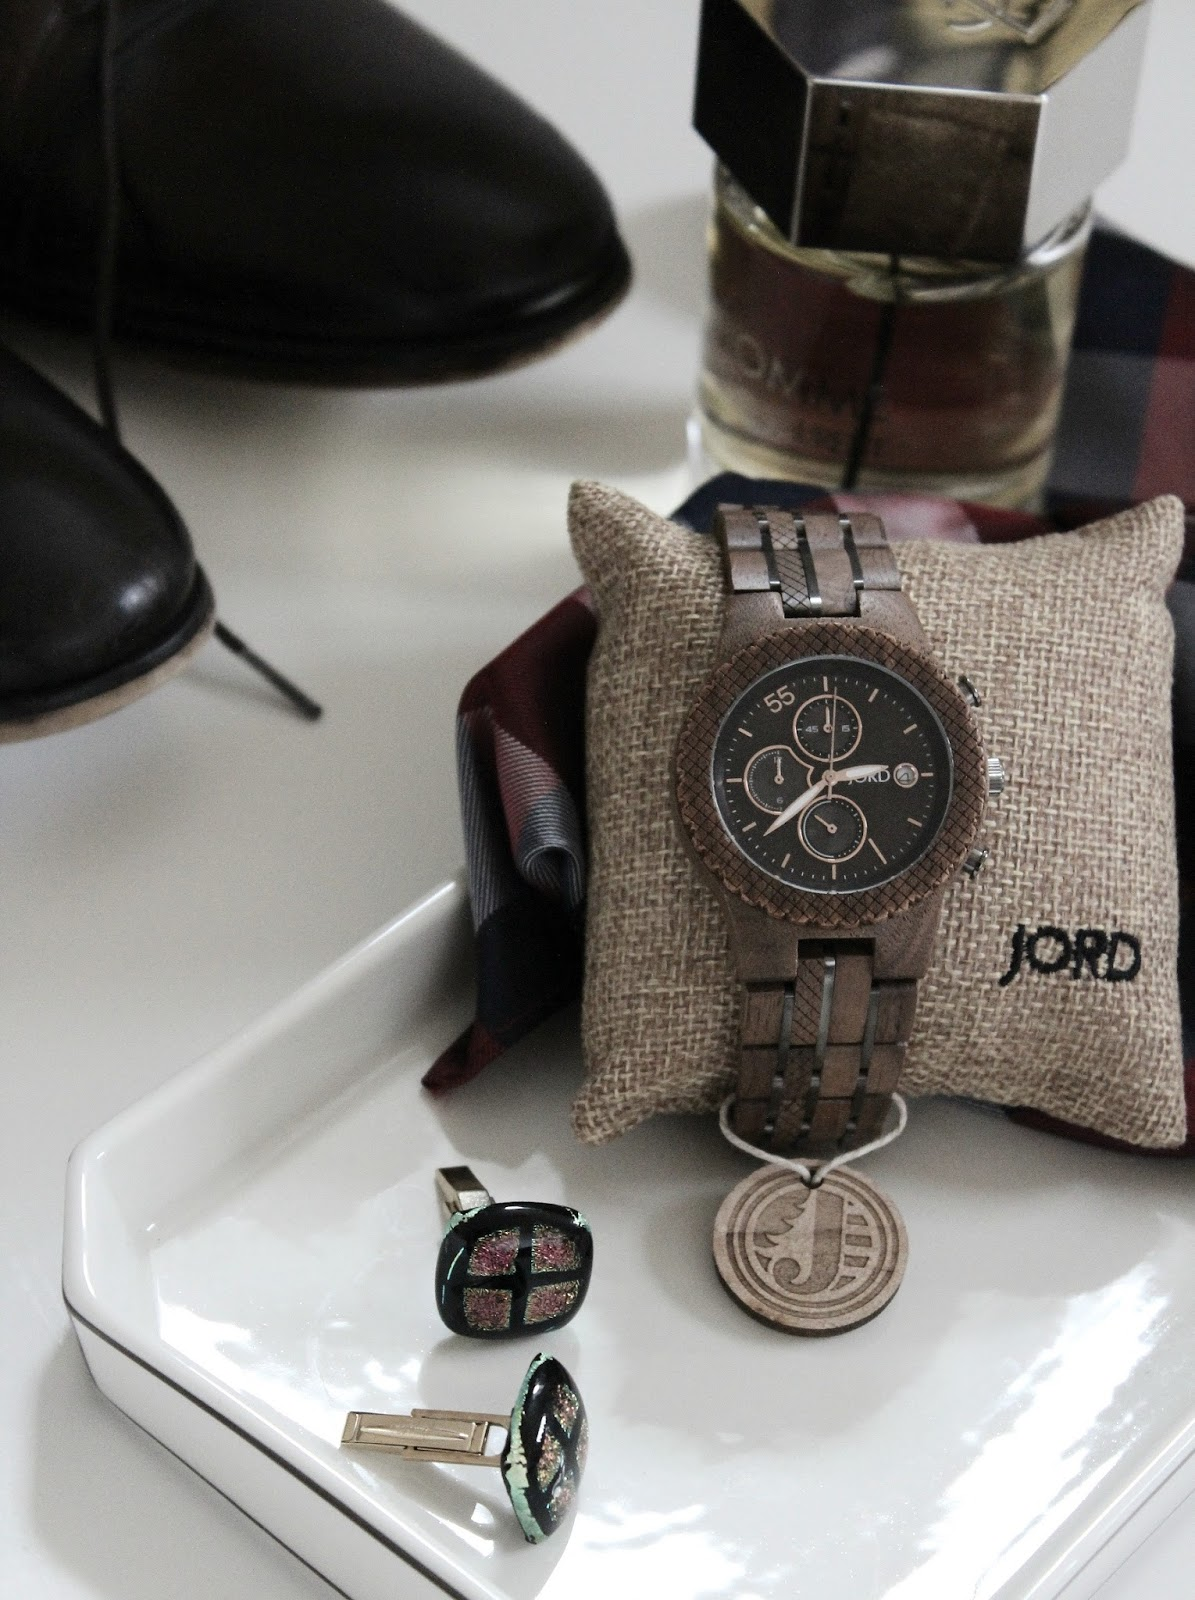 RELATIONSHIP GOALS with JORD WOOD WATCHES and a GIVEAWAY